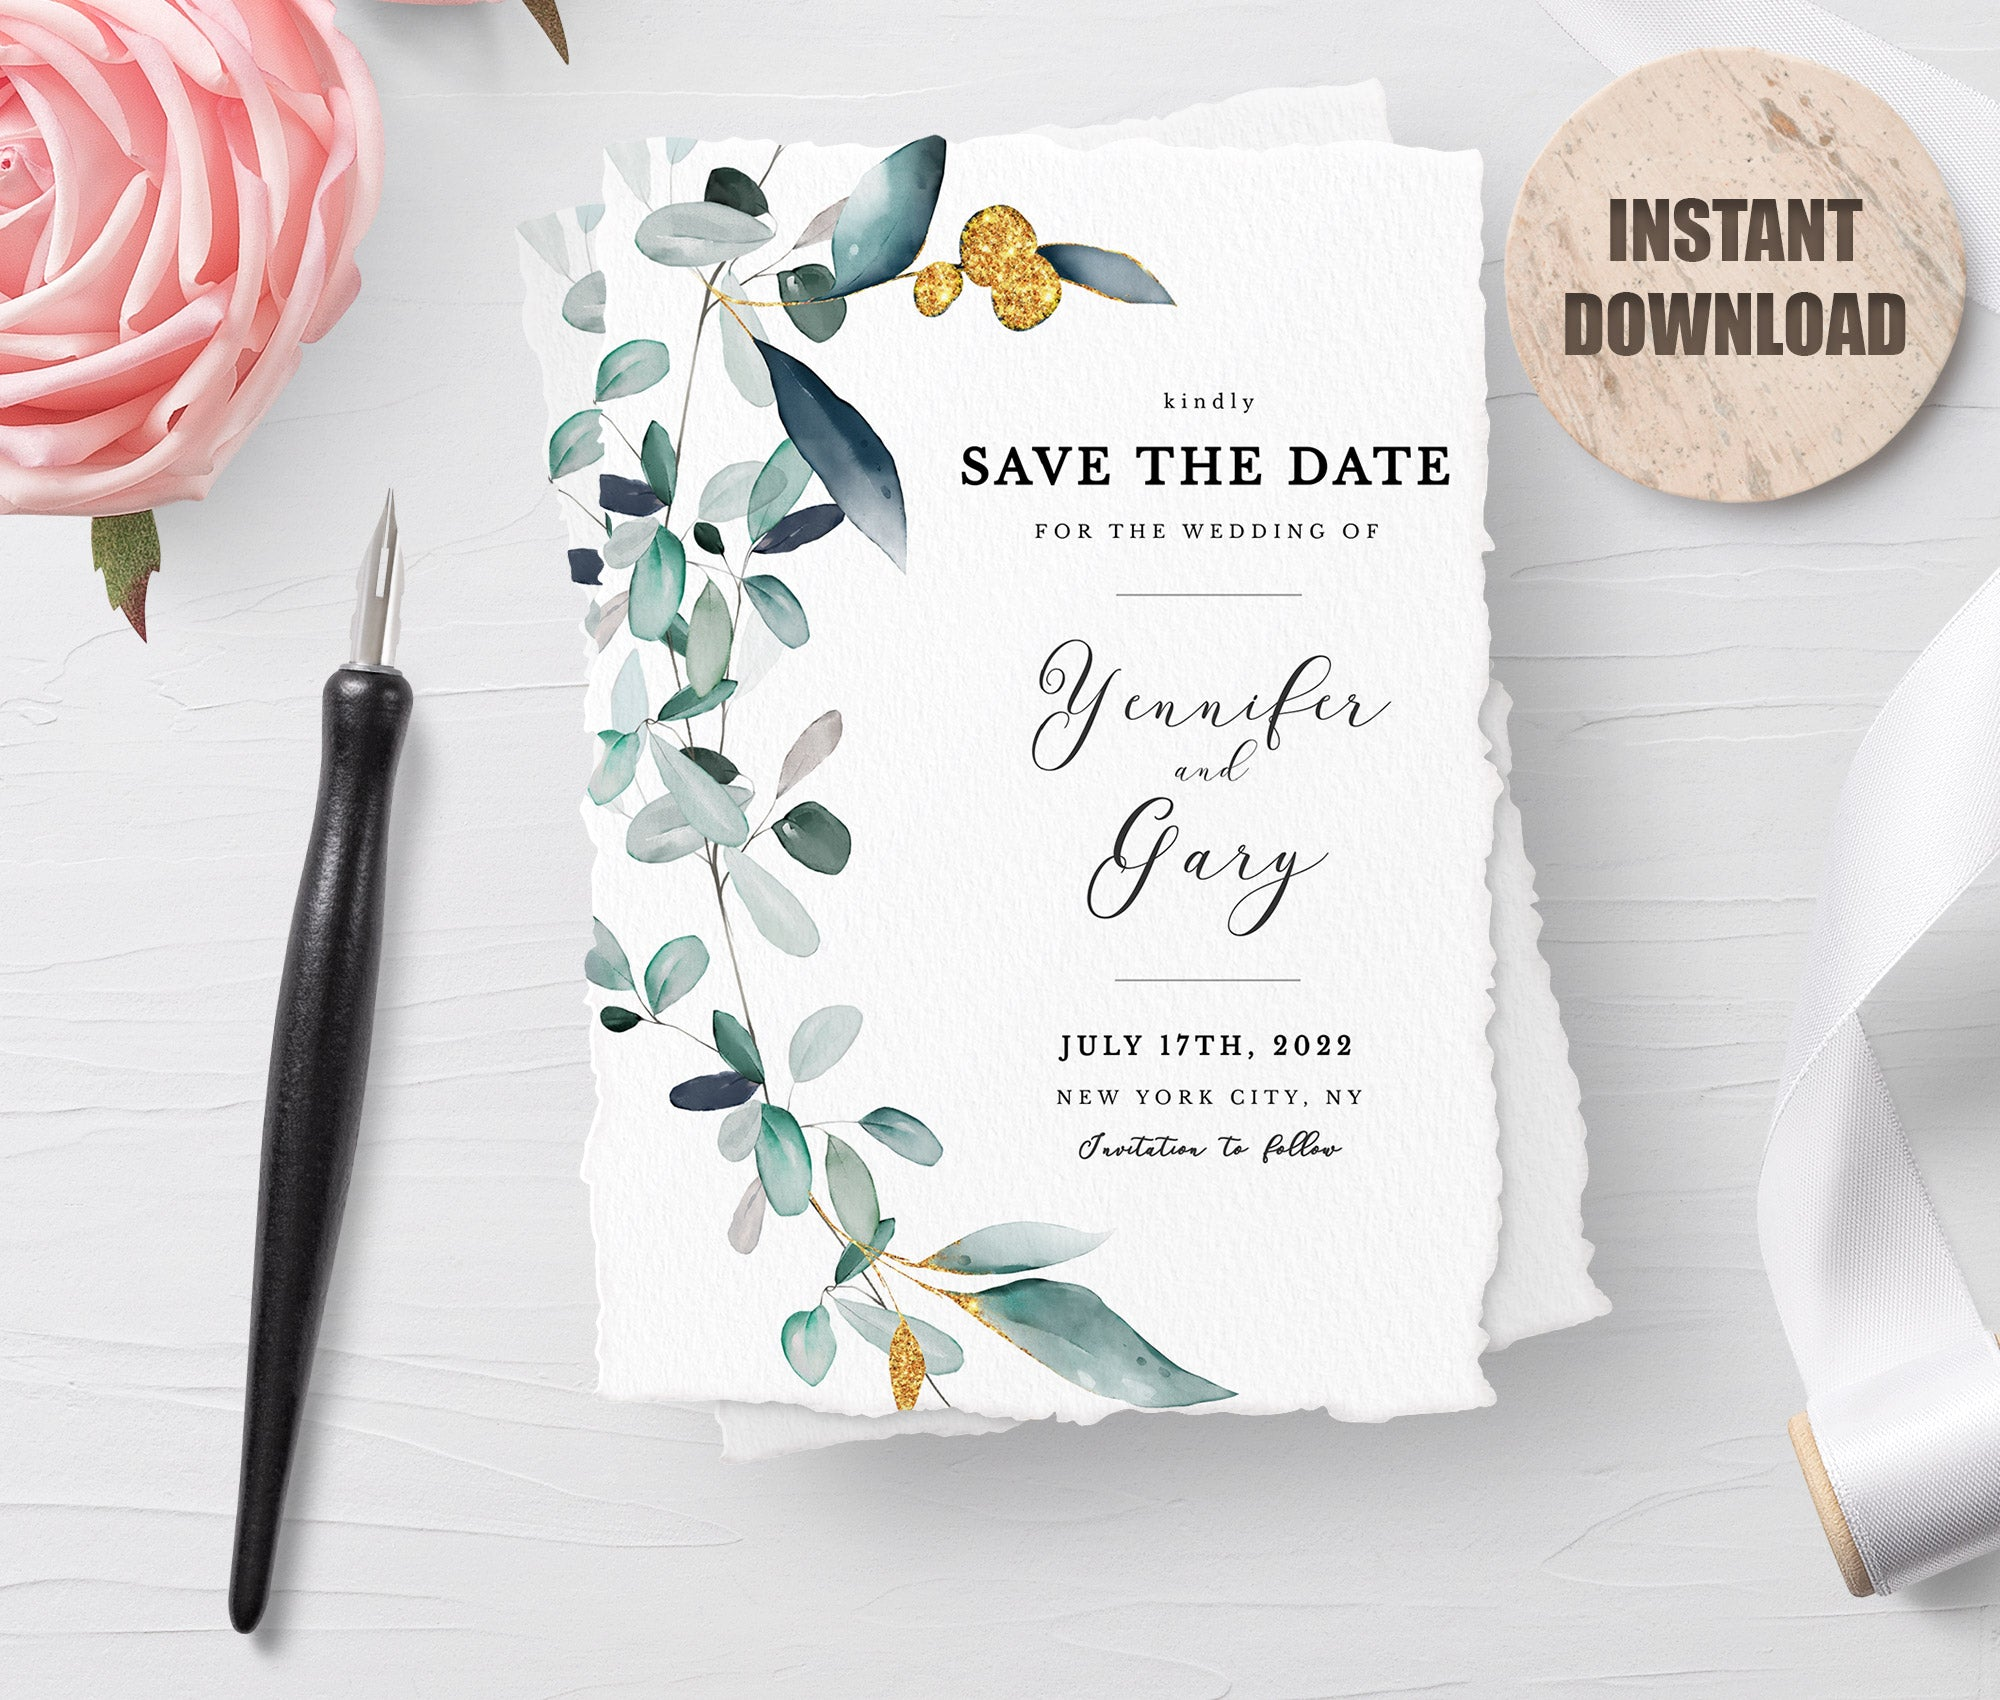 SPMR - Printable Save the Date Card set 7 - Greenlanderdesign